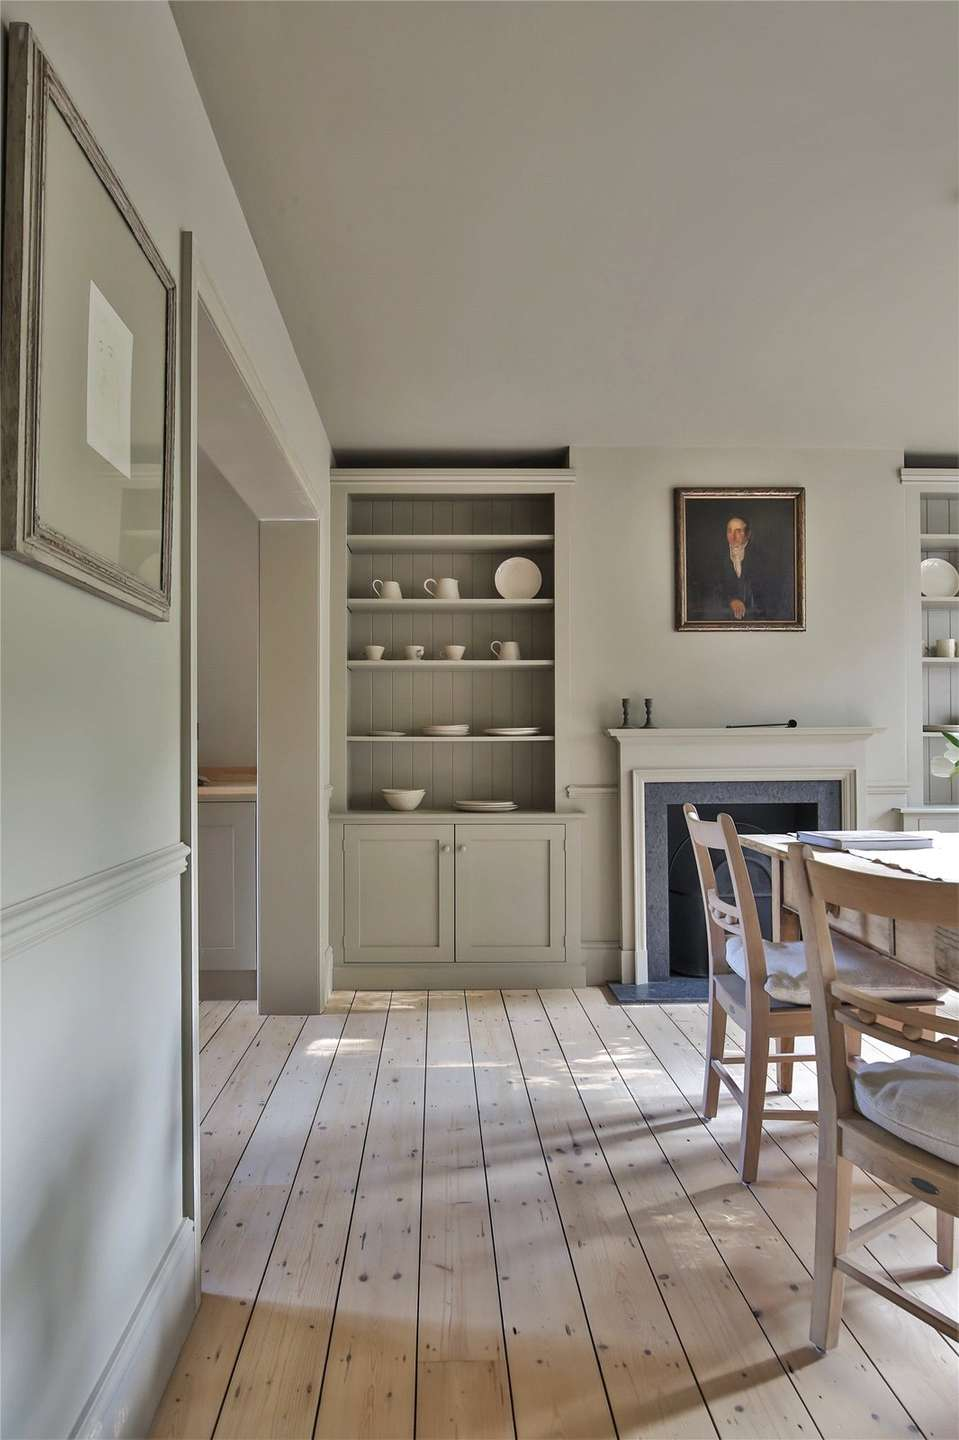 An elegantly-proportioned Victorian house on Woodstock Road in Oxford - Image Gallery 07 - Dining Room